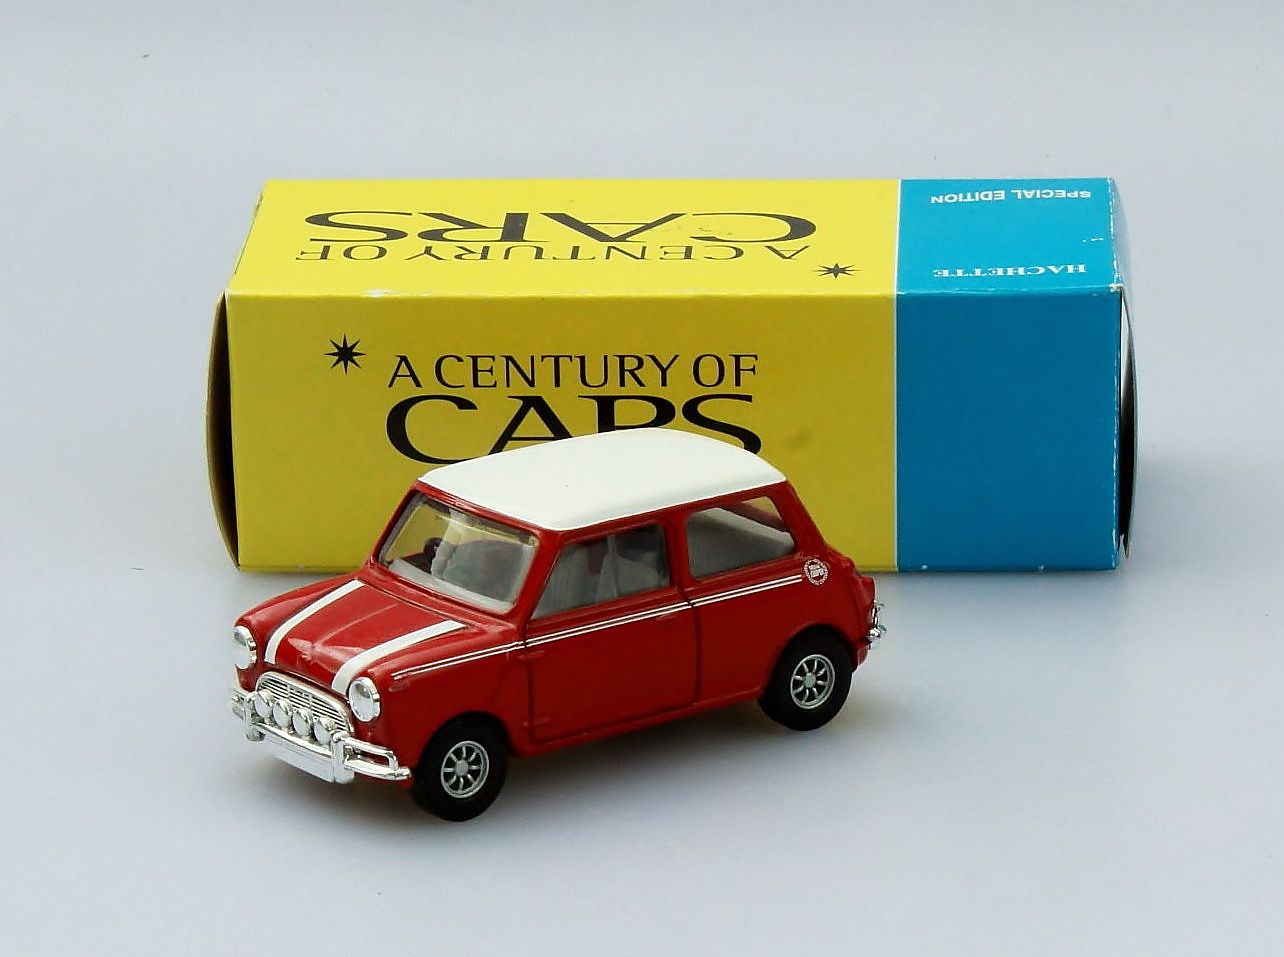 A Century of Cars #1 Corgi CLASSIC MINI COOPER | Diecast Vehicles ...